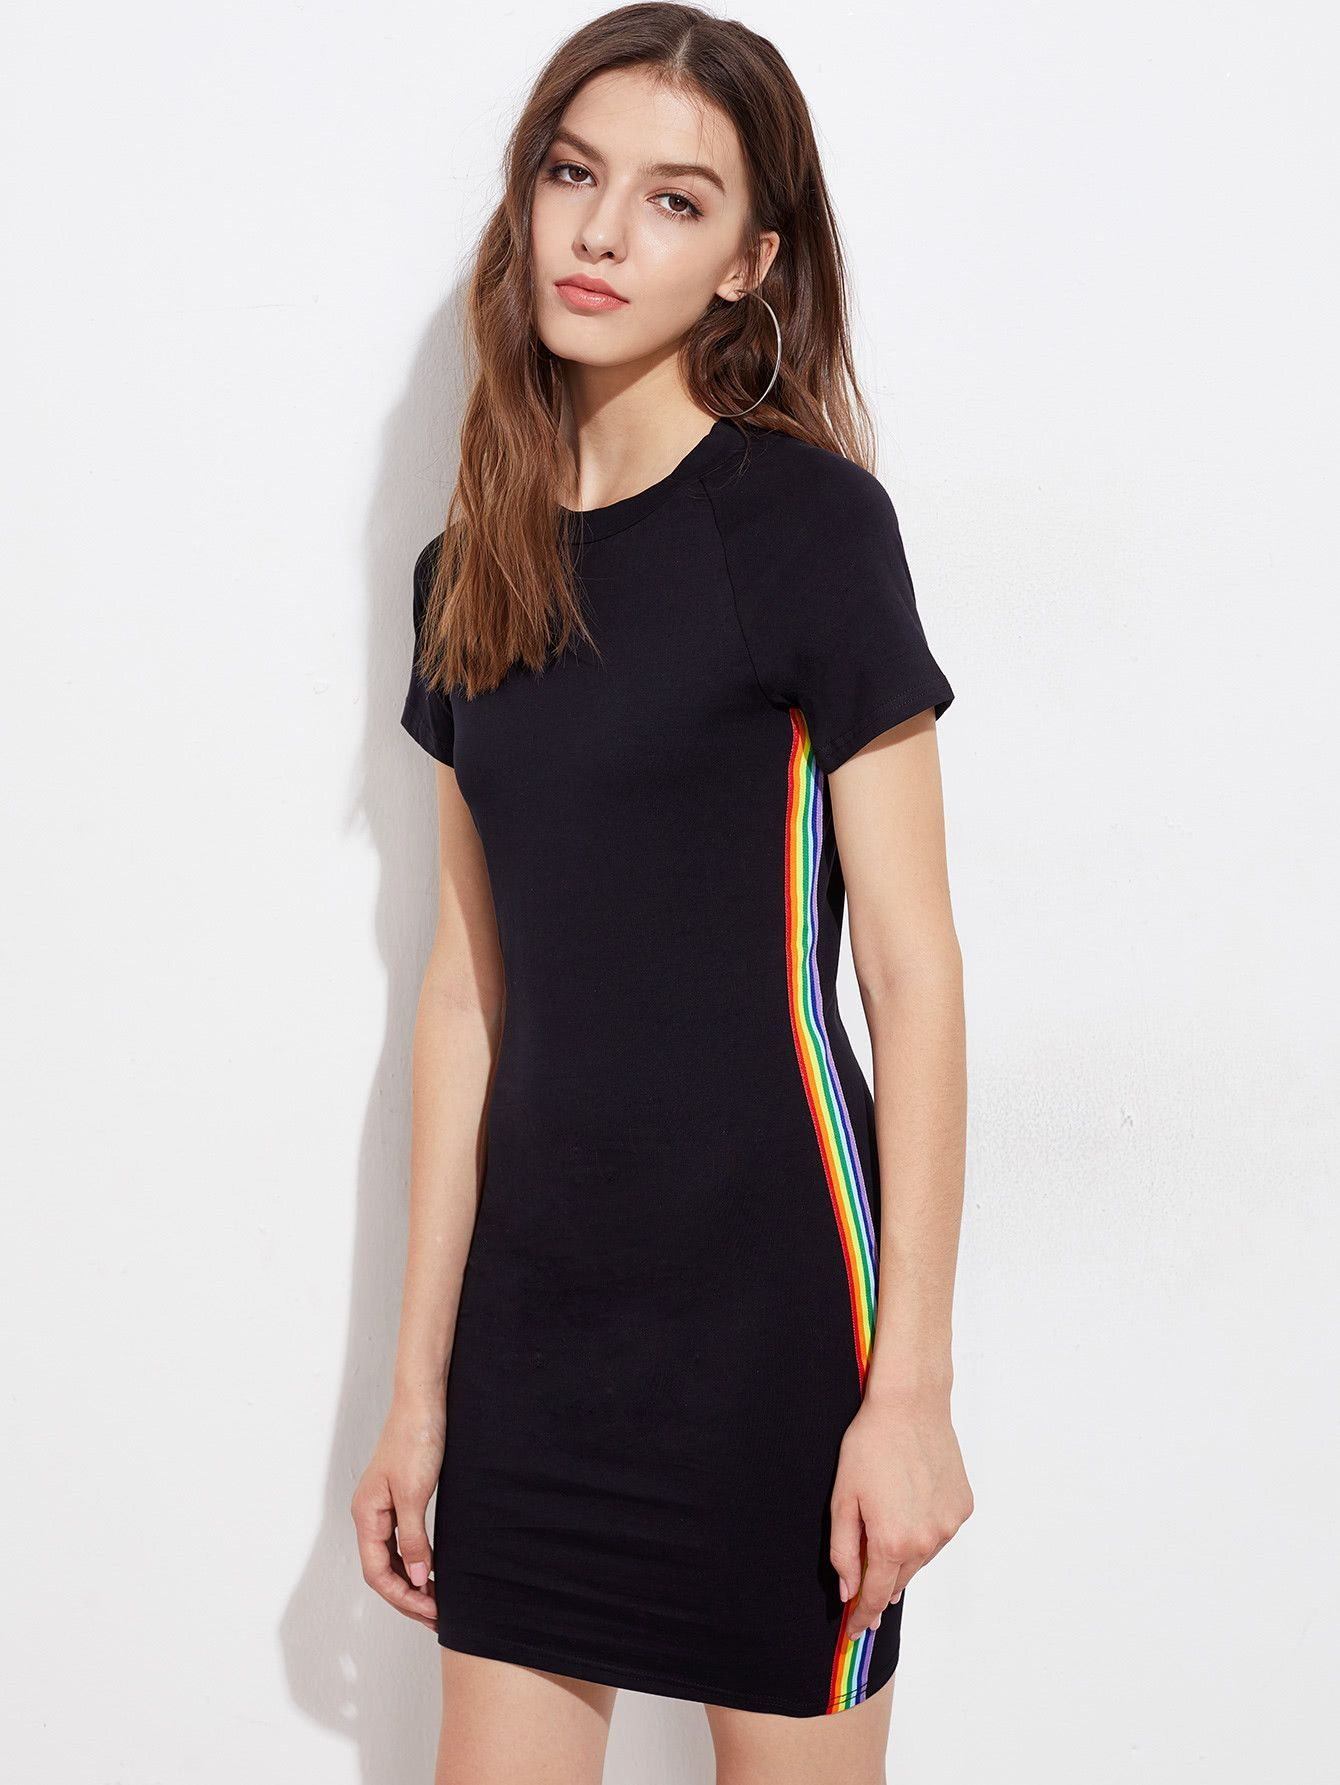 a2d1799655e Type  Tshirt Fabric  Fabric has some stretch Season  Summer Pattern Type   Striped Sleeve Length  Short Sleeve Color  Black Dresses Length  Short  Style  ...